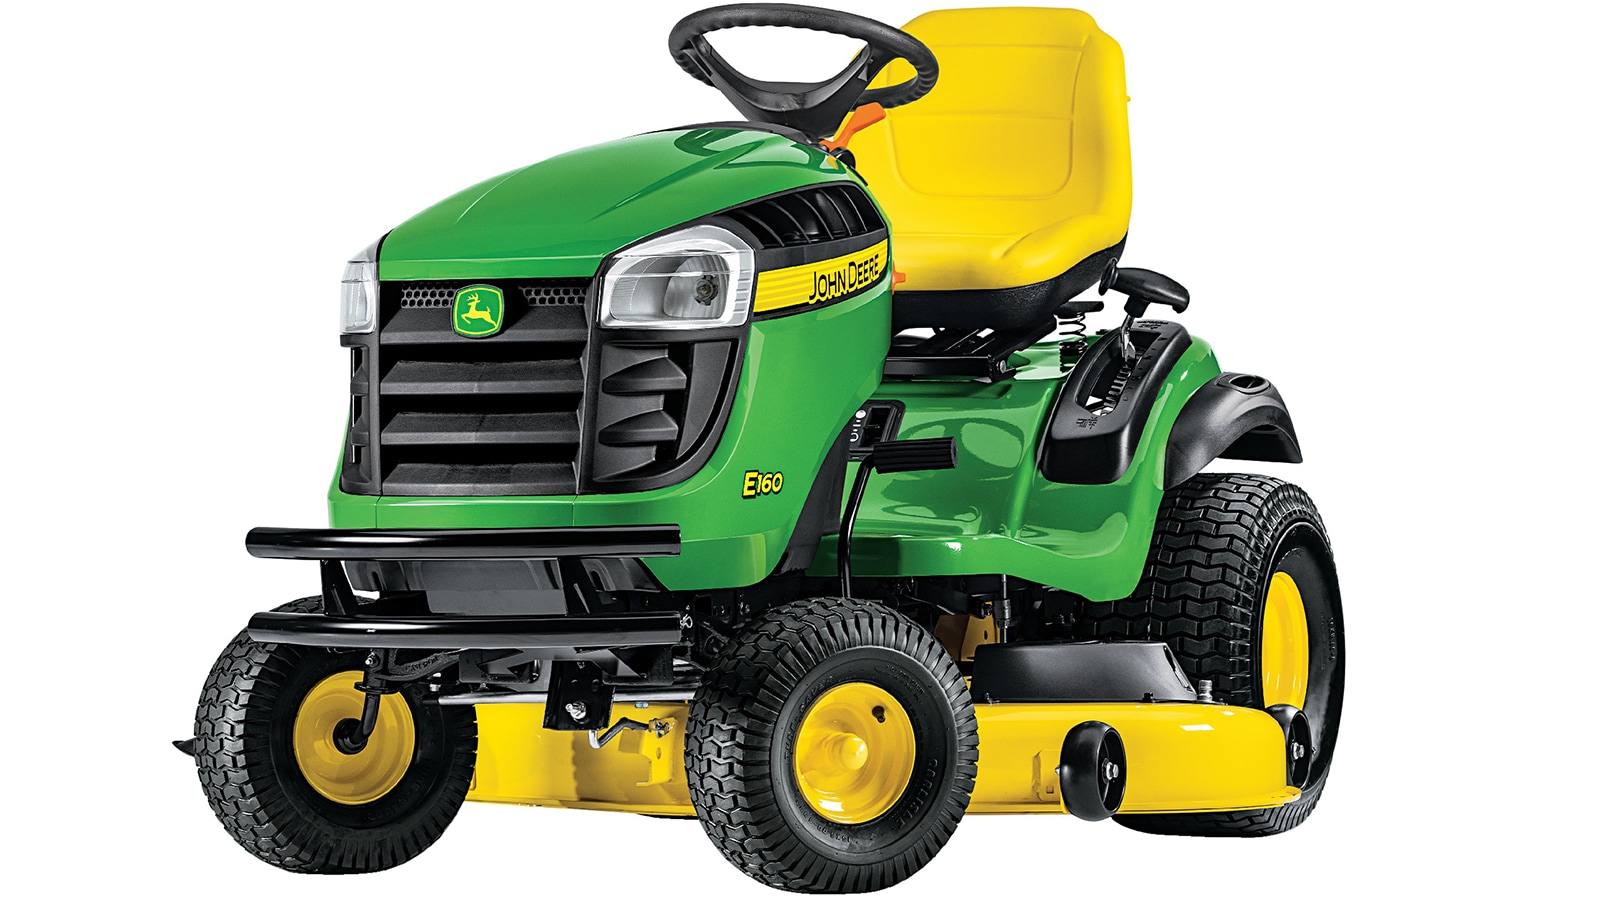 100 Series lawn tractors are comfortable and hassle-free